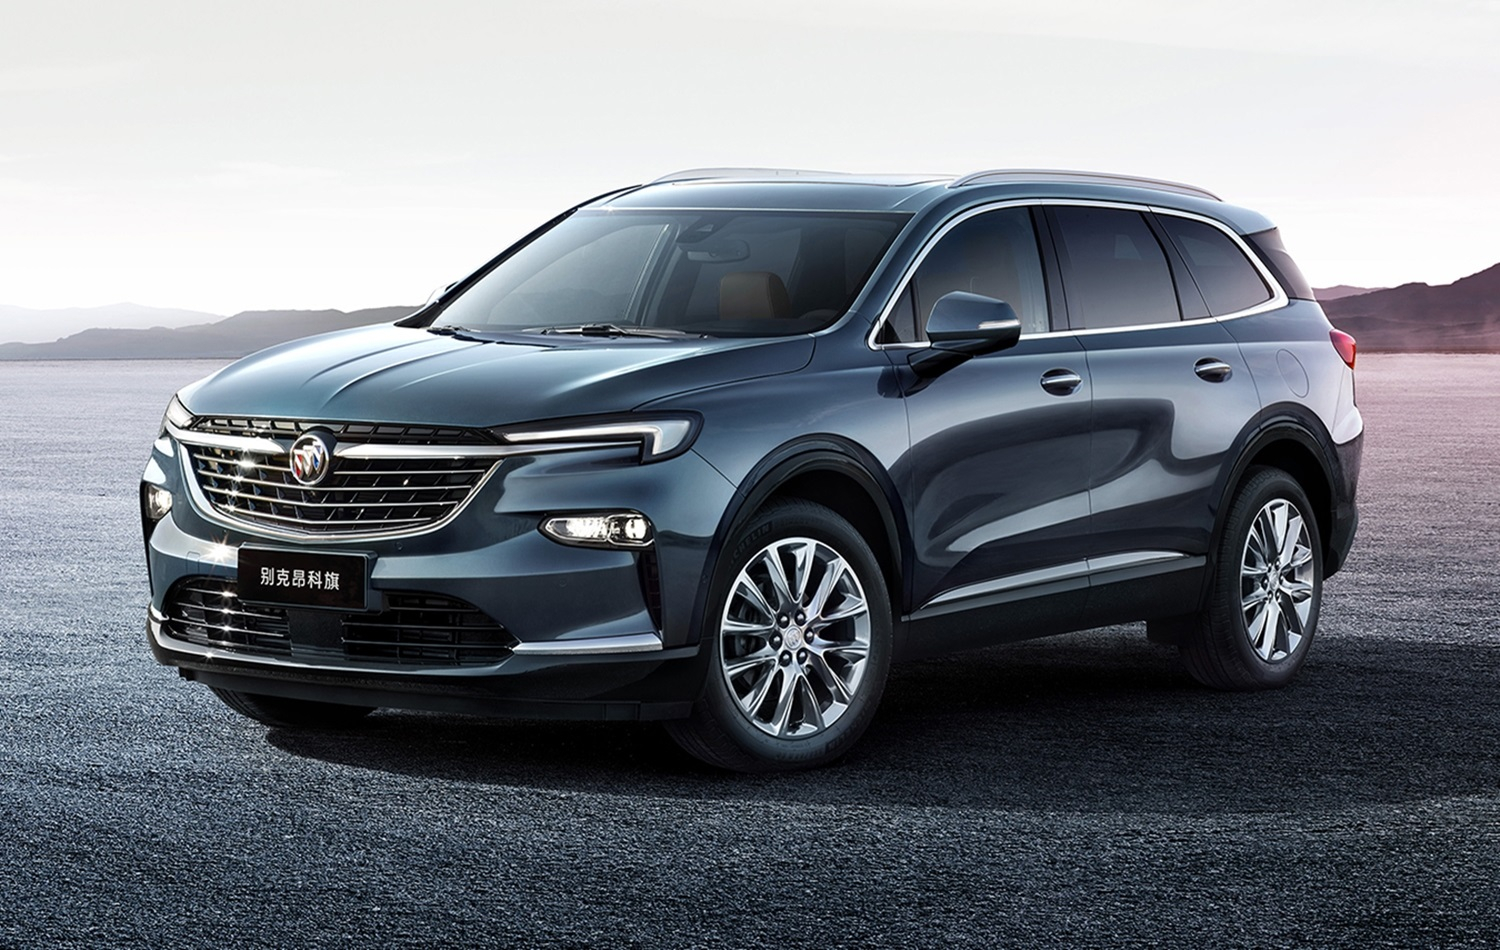 This Is The All-New Buick Enclave Crossover For China | Gm Build Your Own 2021 Buick Enclave